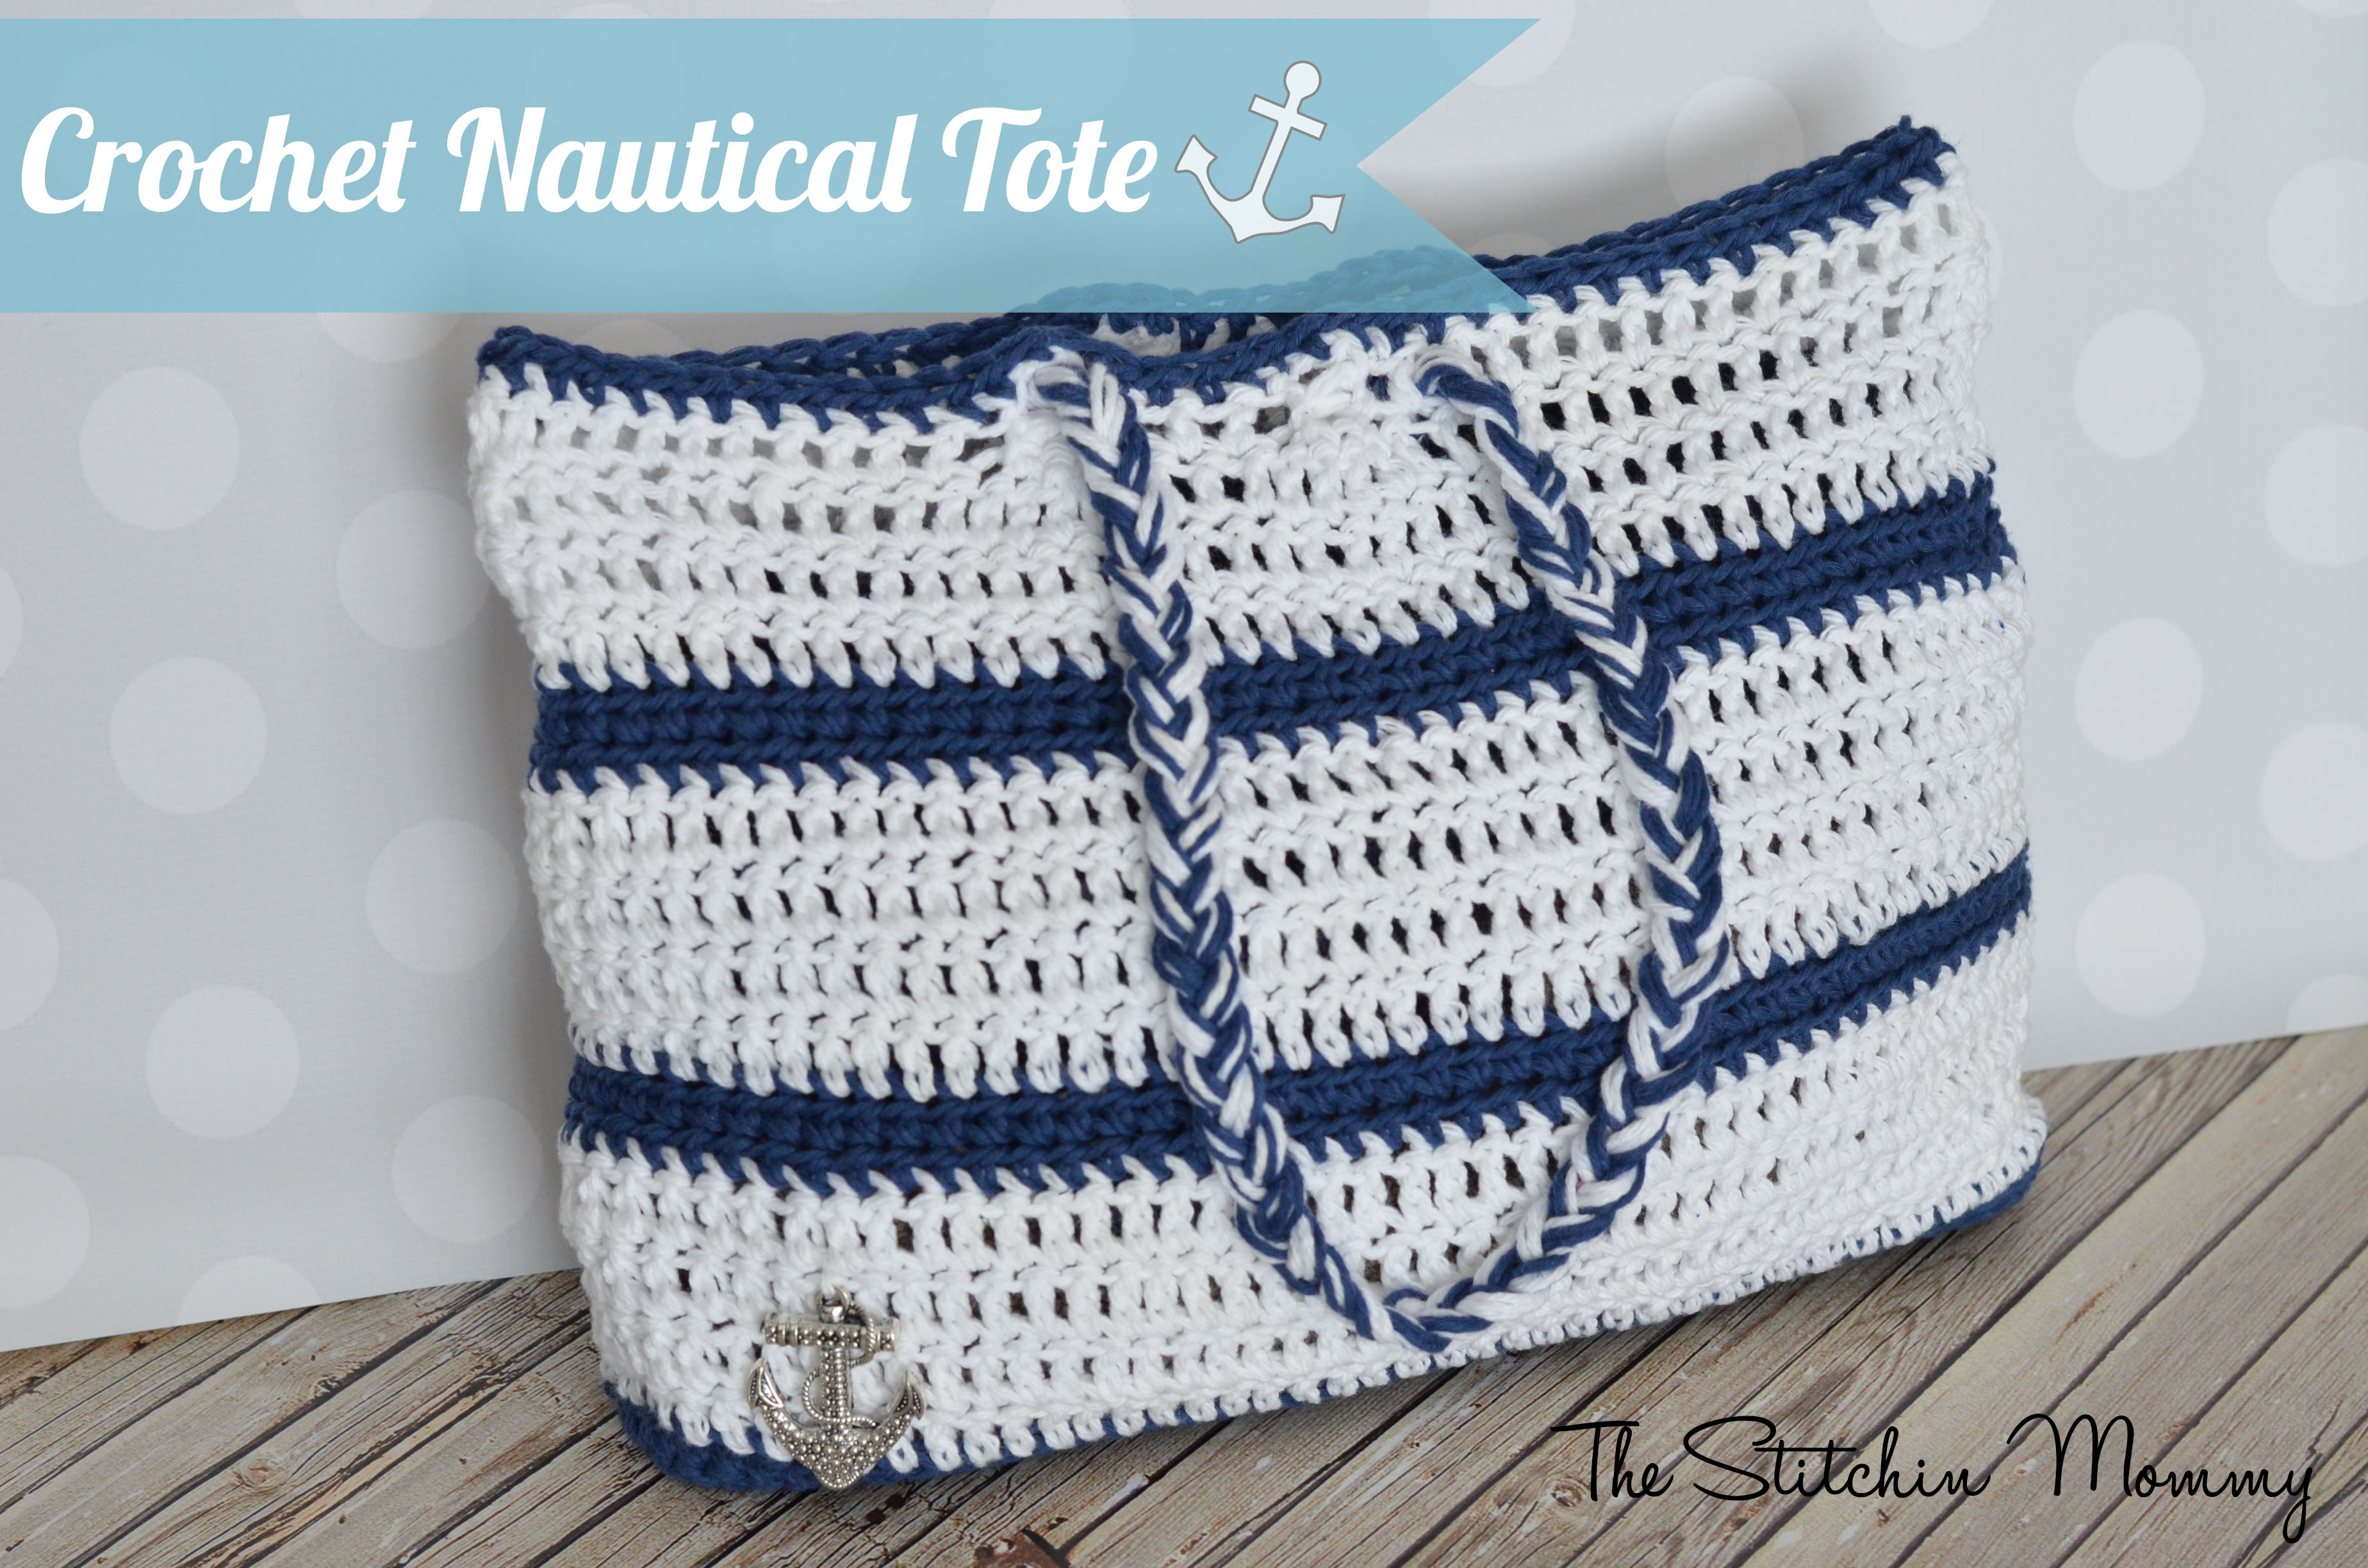 Crochet Patterns Nautical : Crochet Nautical Tote www.thestitchinmommy.com